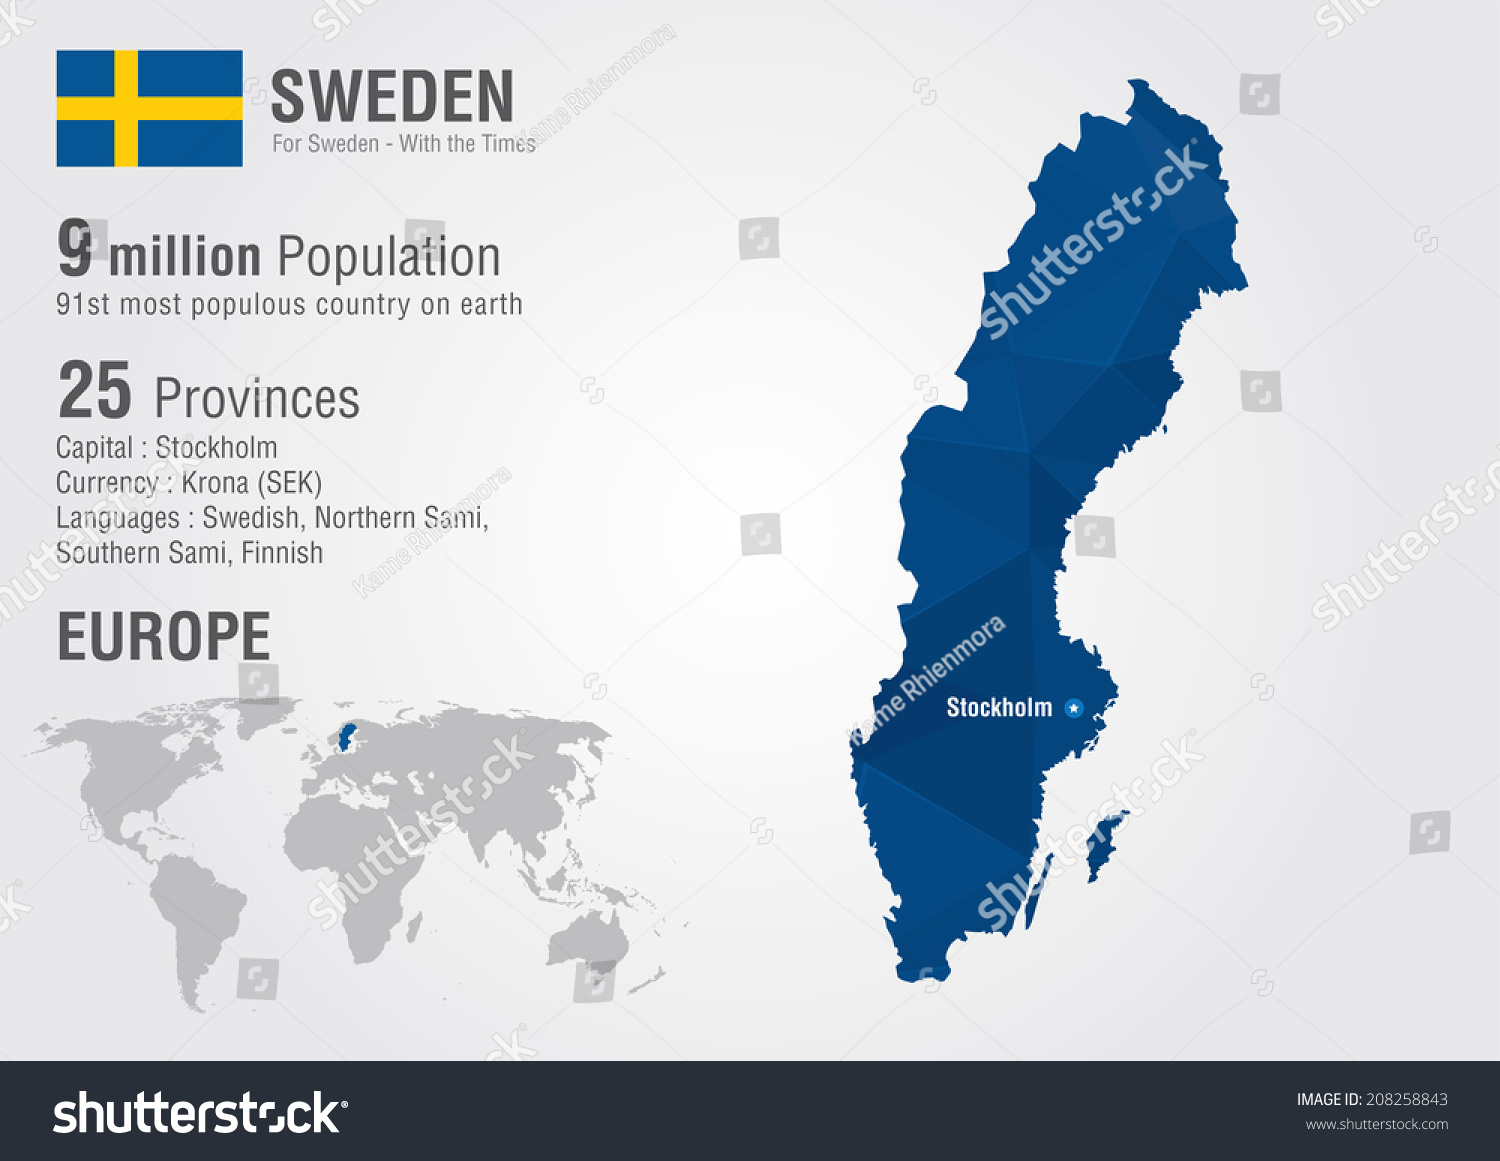 Sweden world map pixel diamond texture stock vector 208258843 sweden world map with a pixel diamond texture world geography gumiabroncs Images